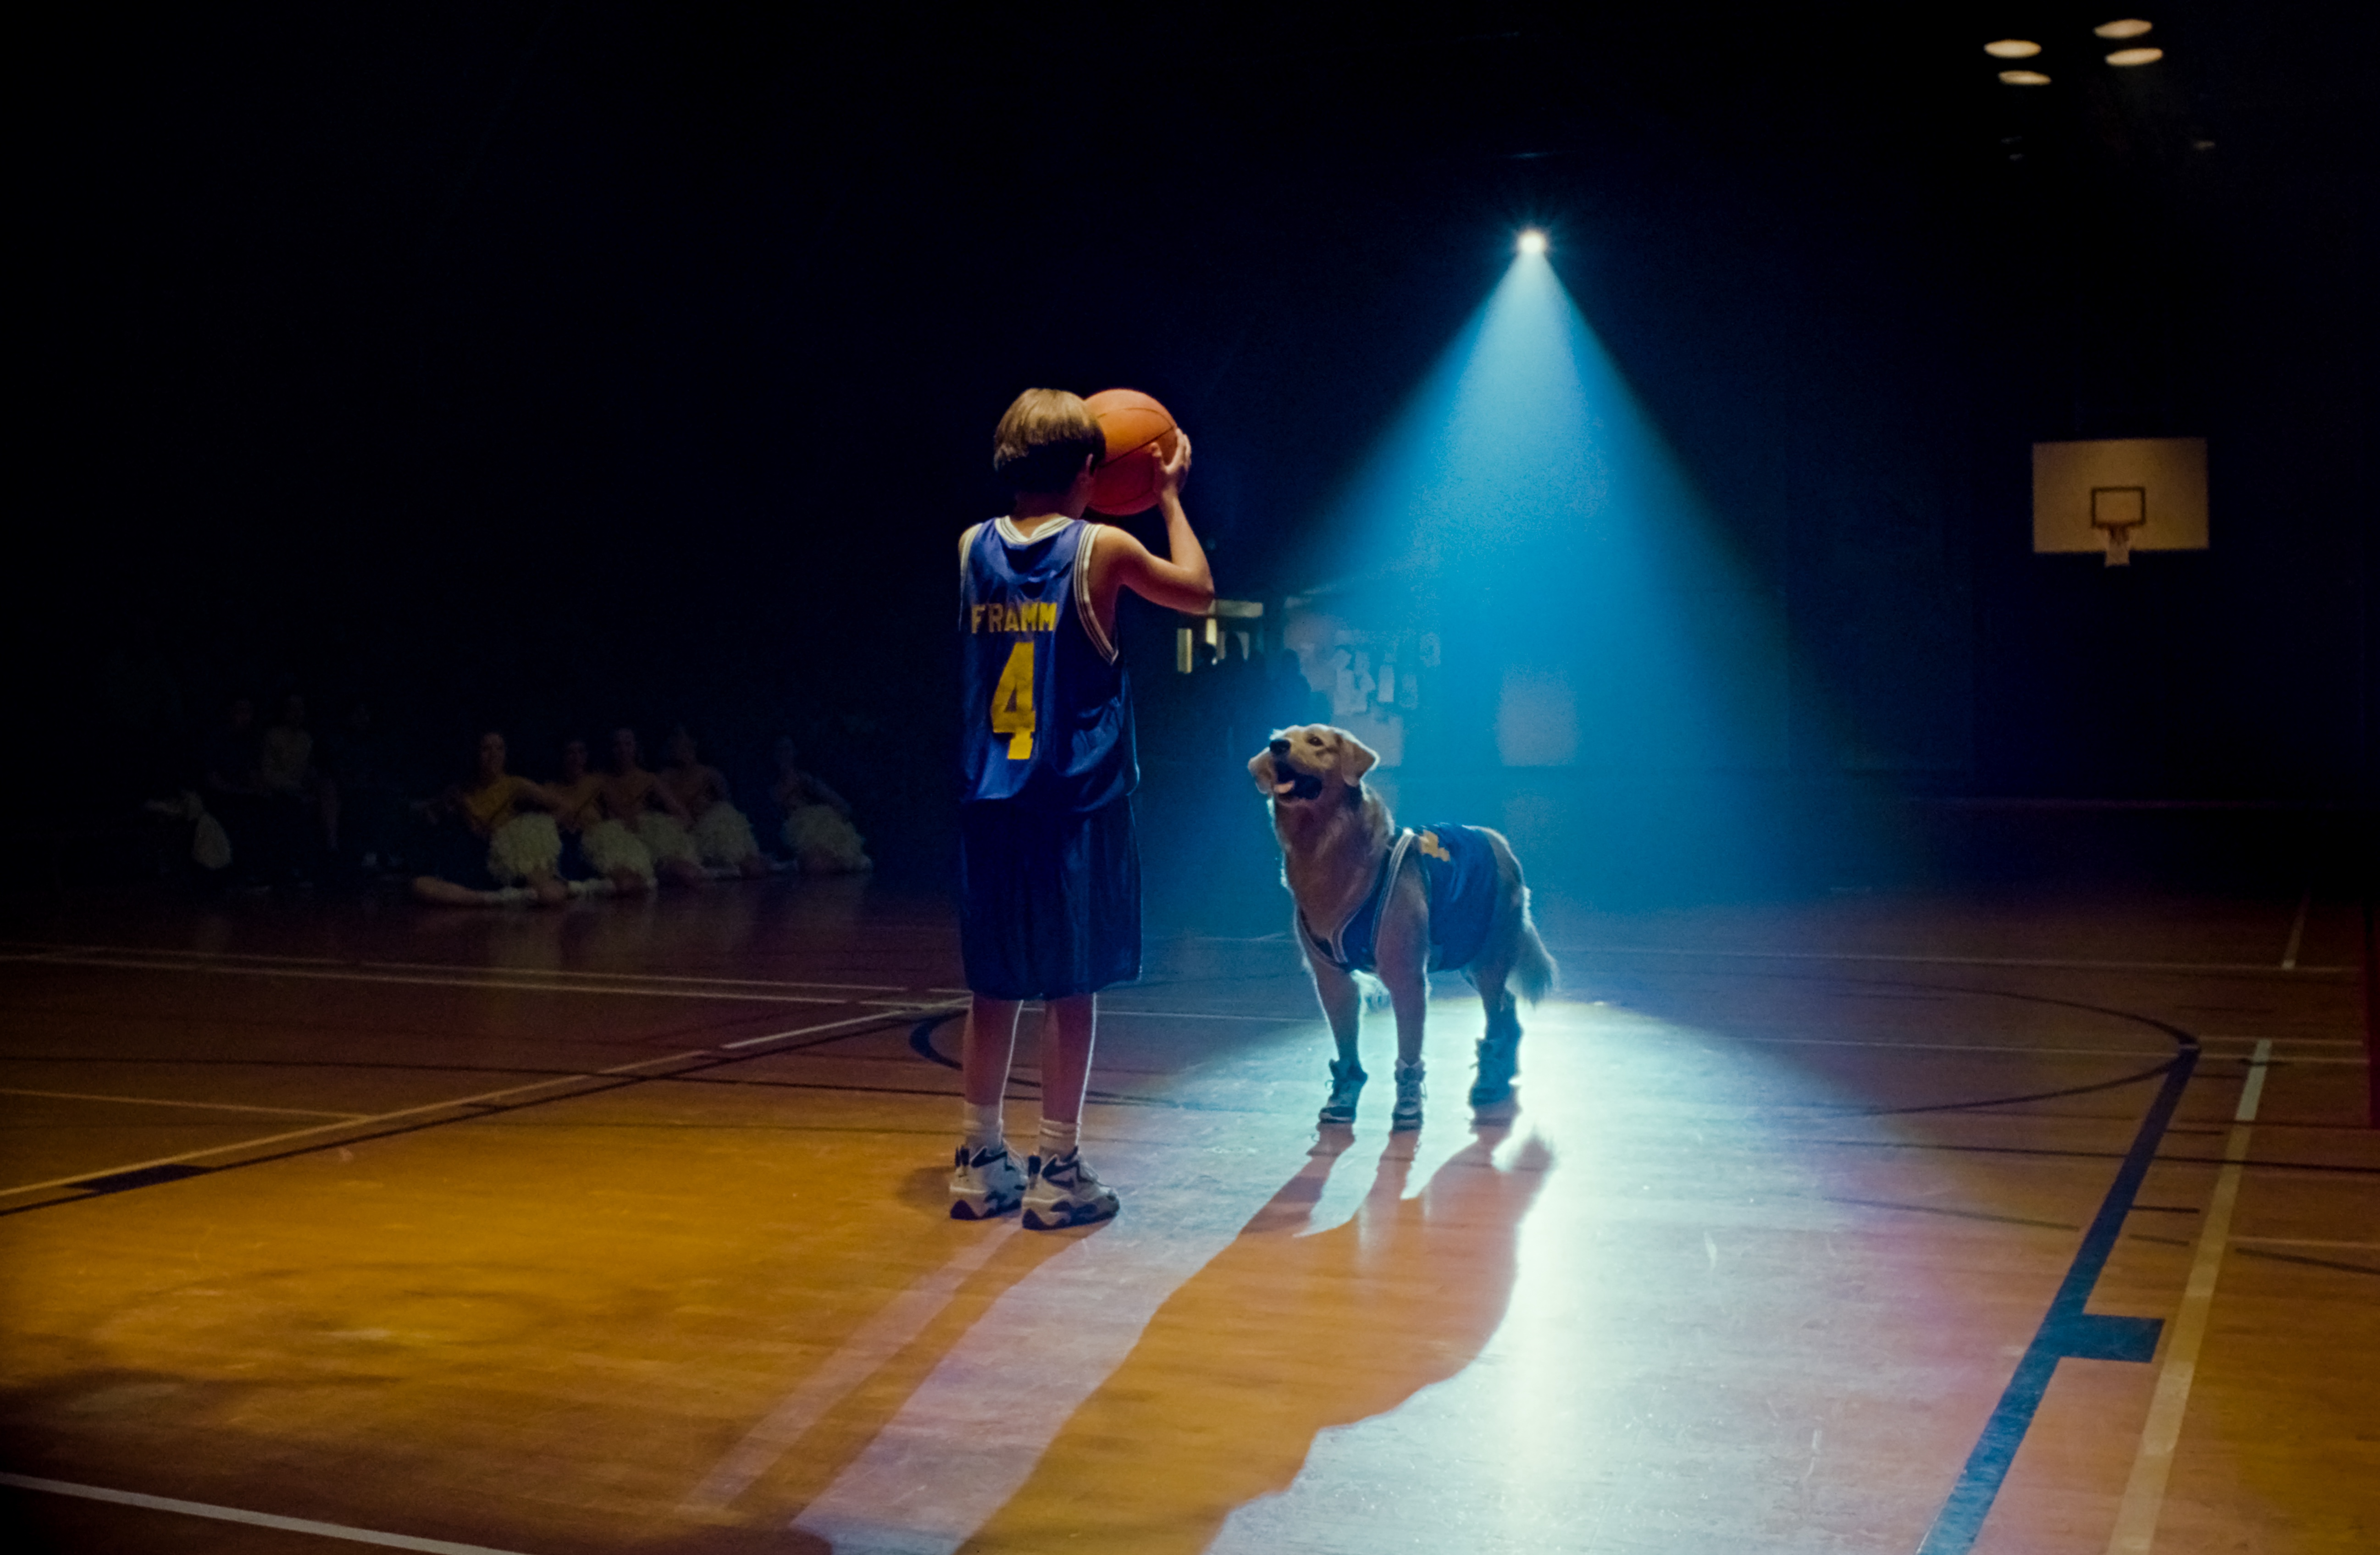 Kevin Zegers in Air Bud (1997)